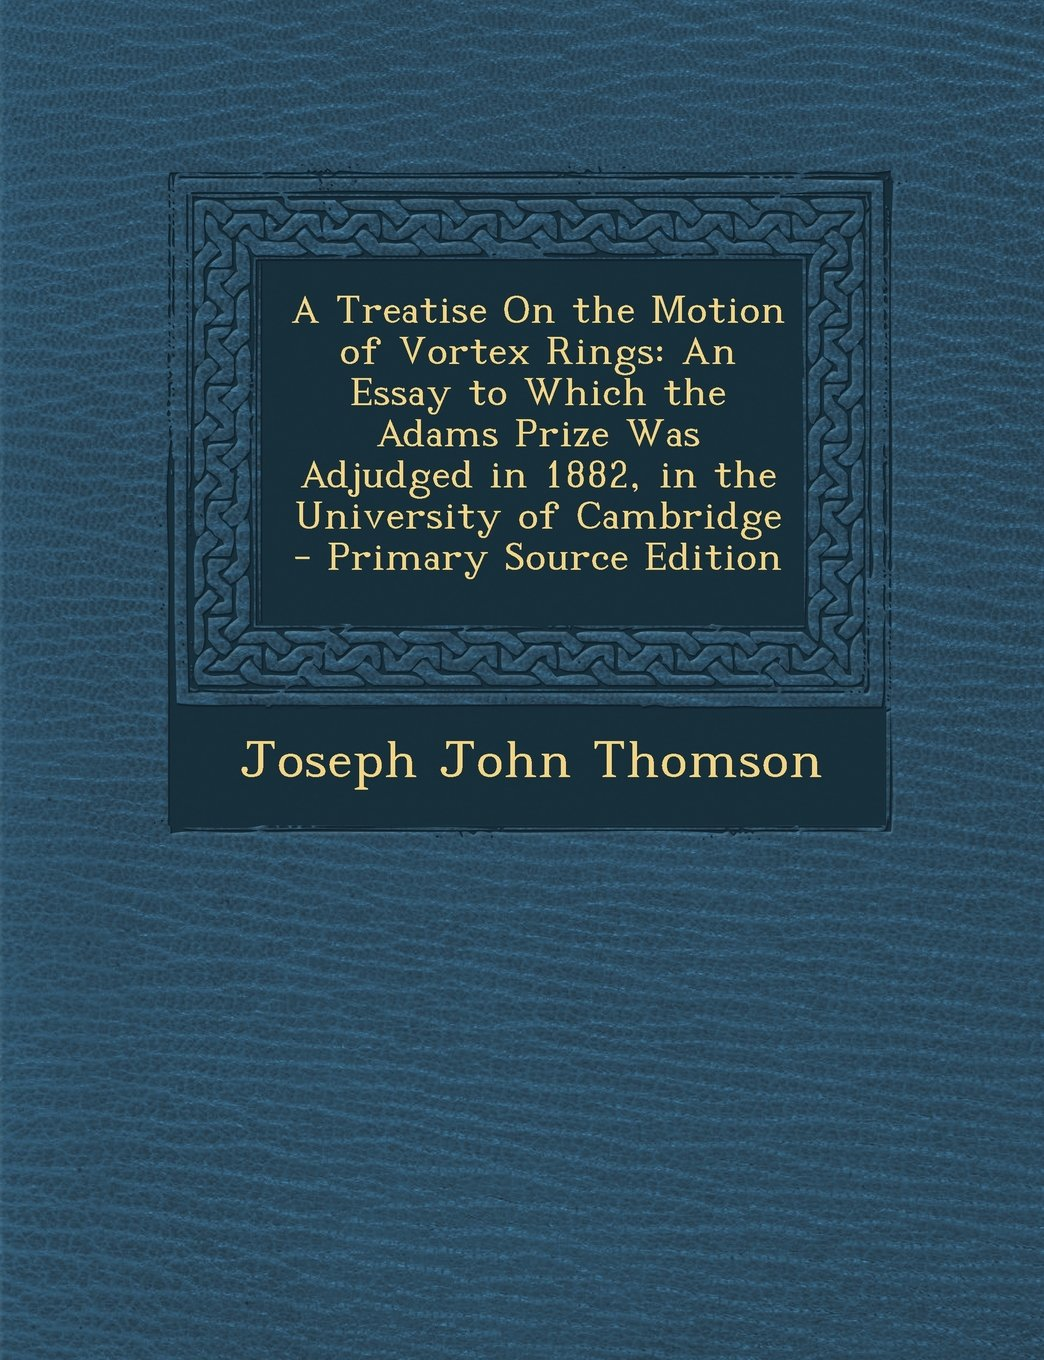 Download A Treatise On the Motion of Vortex Rings: An Essay to Which the Adams Prize Was Adjudged in 1882, in the University of Cambridge - Primary Source Edition ebook